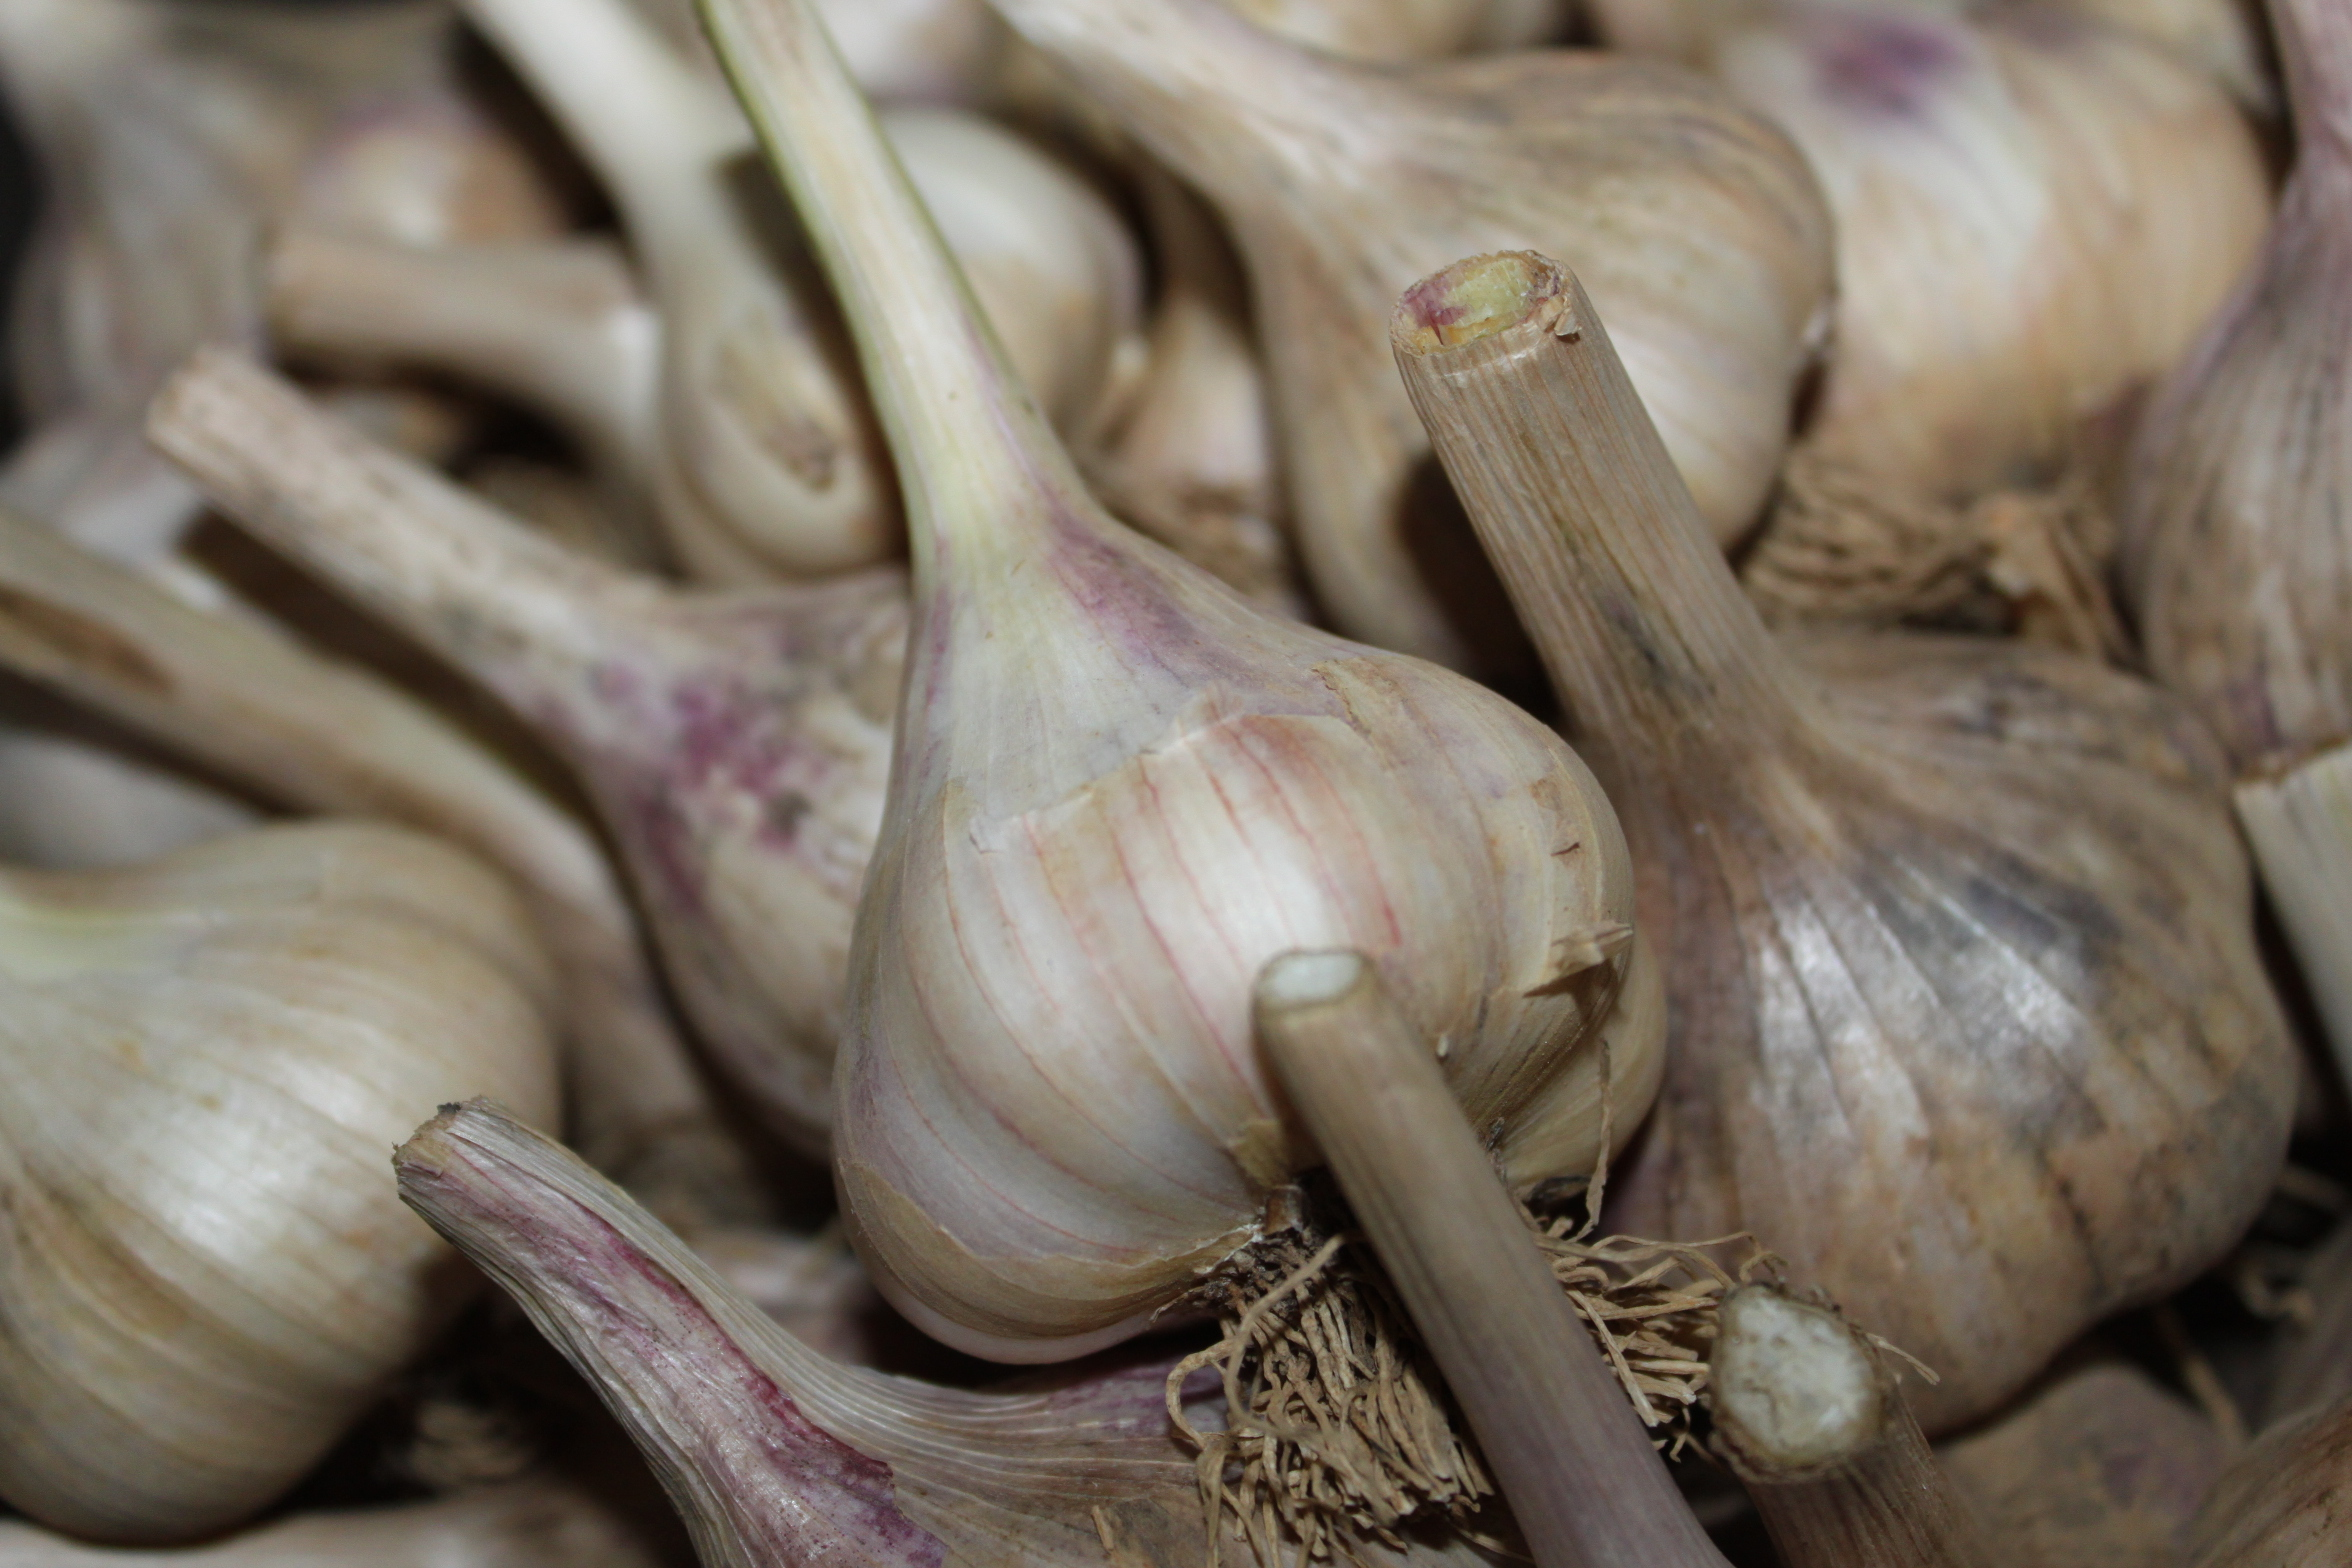 All About Garlic Harvesting Growing And Storing Old World Garden Farms